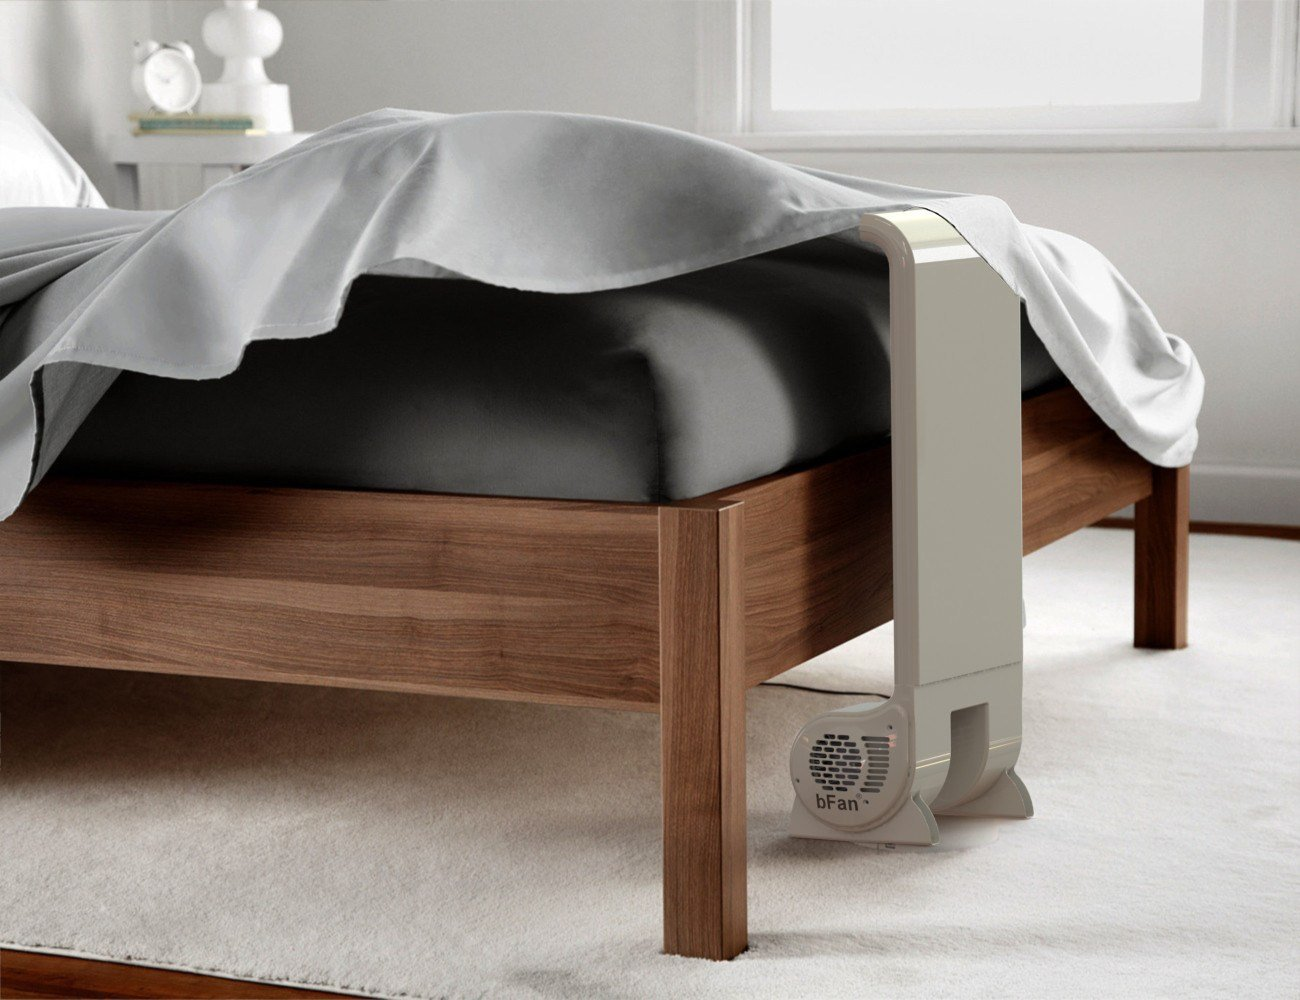 Must-have bedroom gadgets for summer 2021